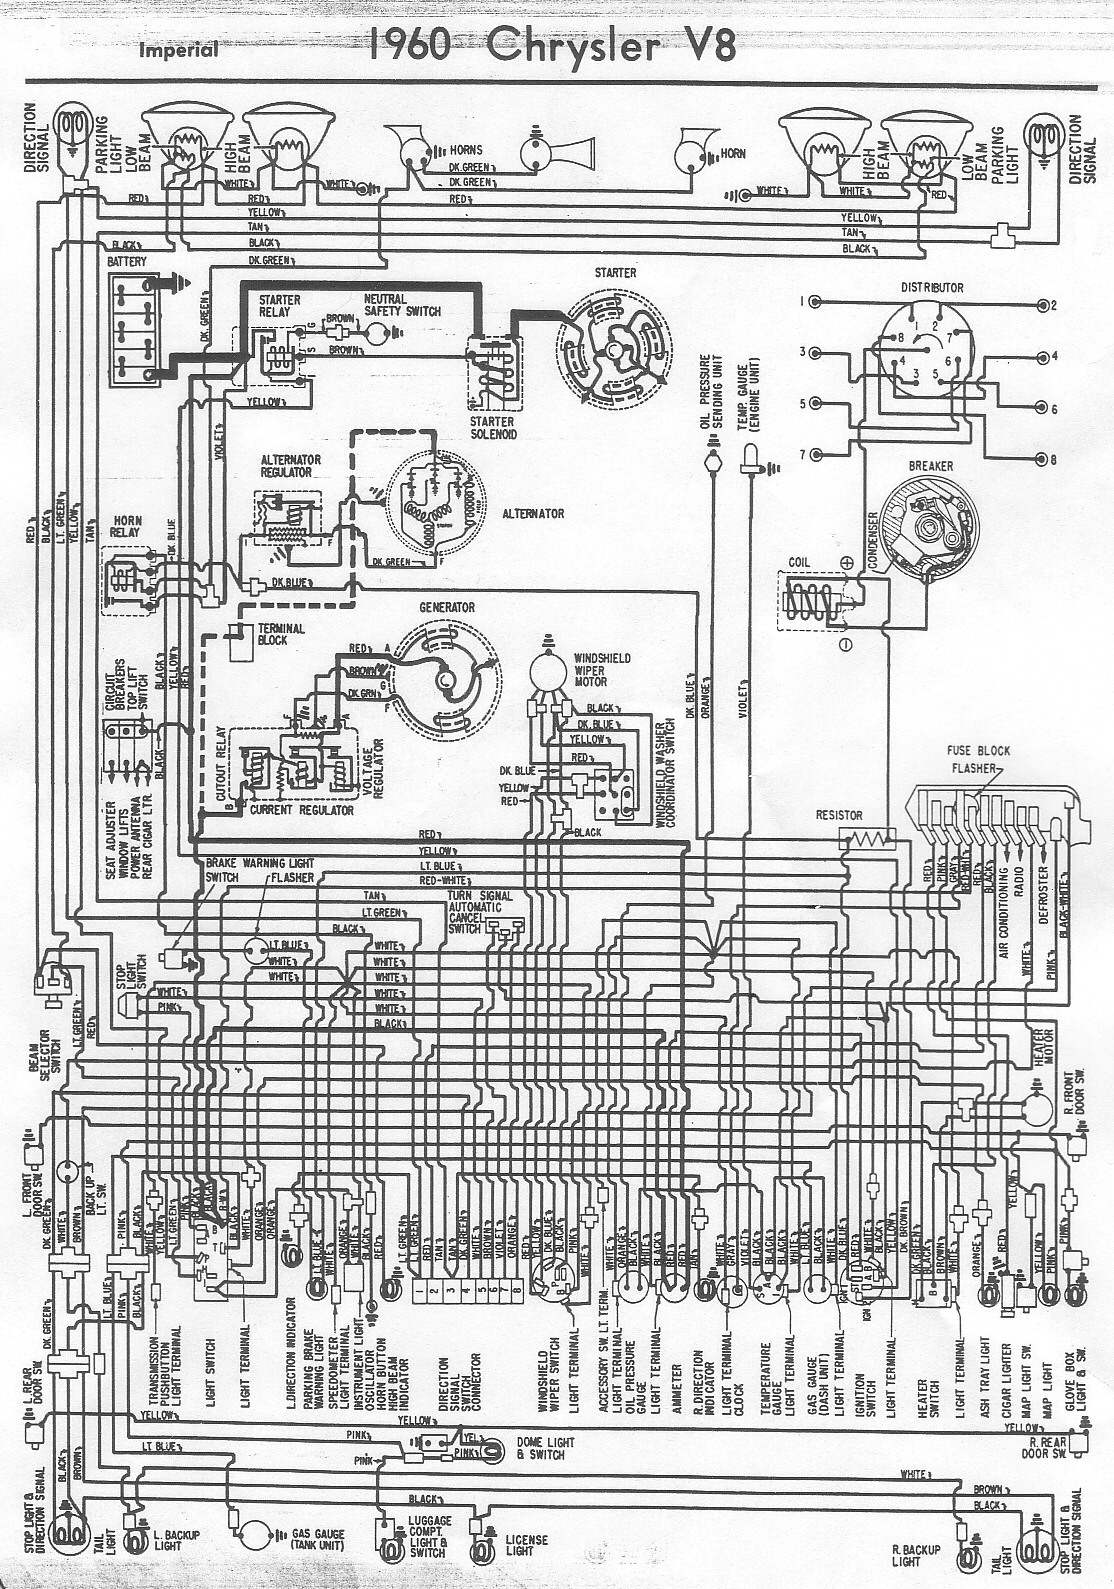 hight resolution of free auto wiring diagram 1960 chrysler v8 imperial wiring 1951 chrysler 2 door hardtop 1955 imperial